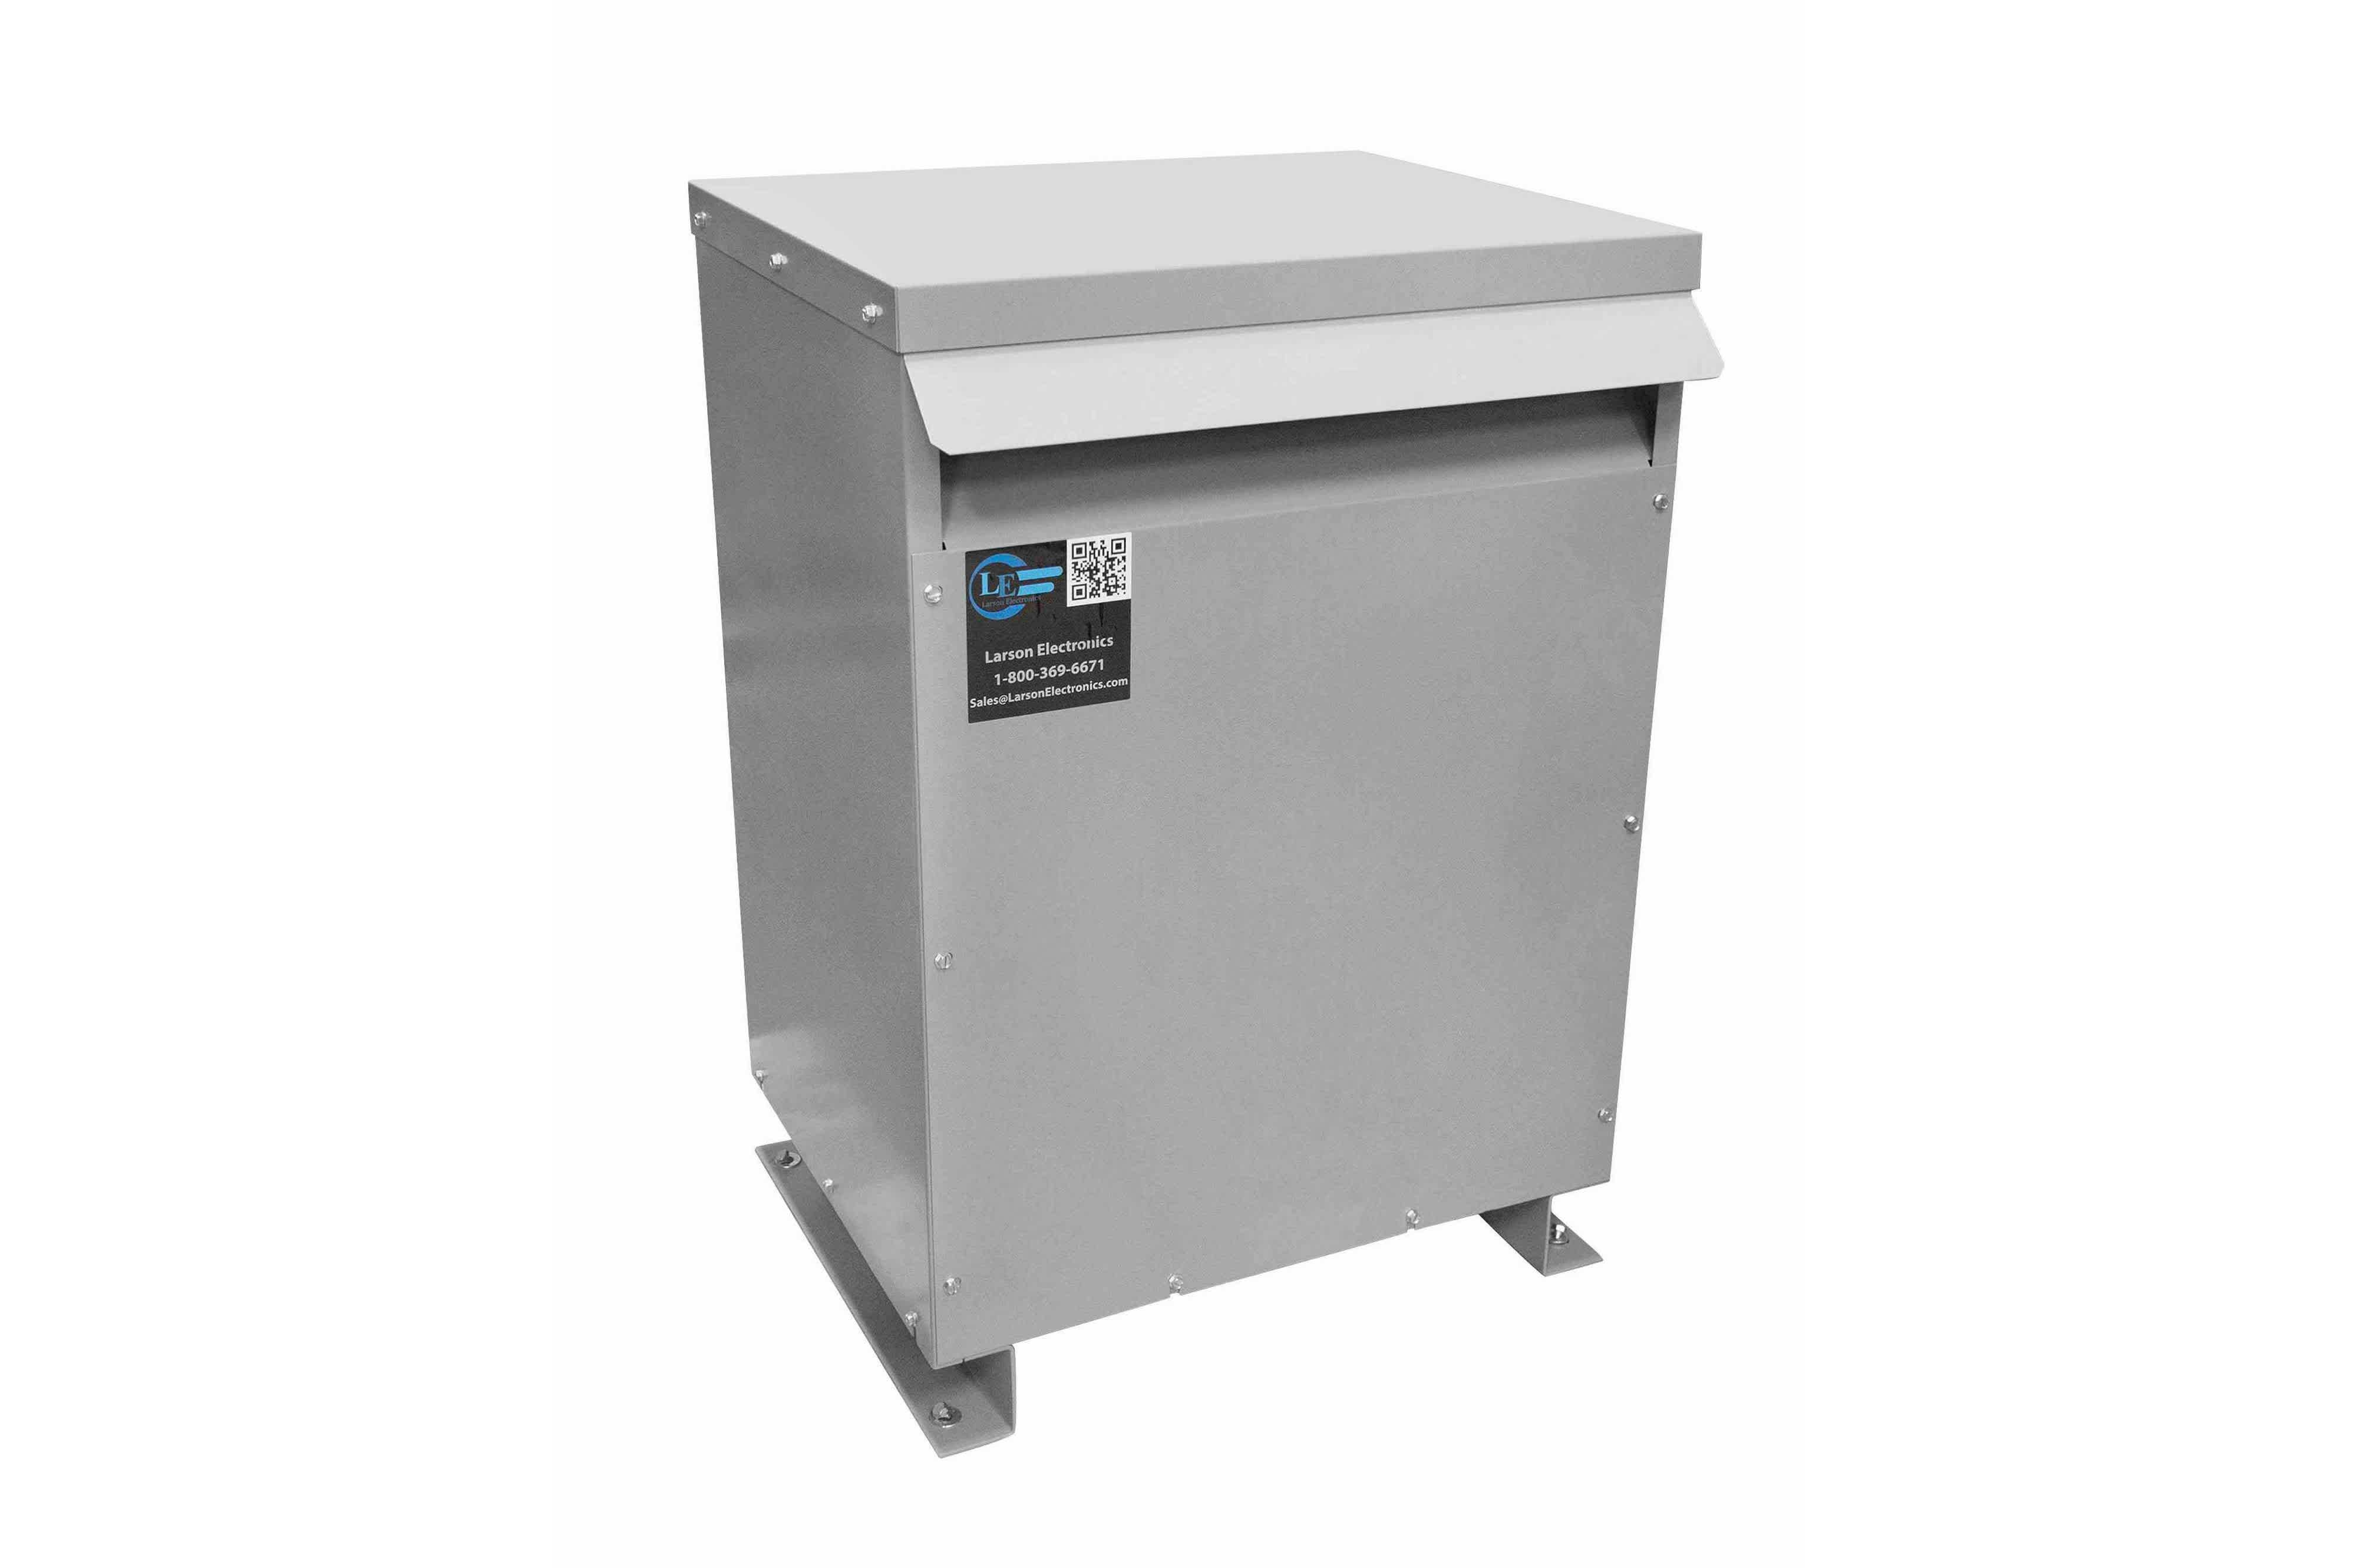 100 kVA 3PH DOE Transformer, 440V Delta Primary, 208Y/120 Wye-N Secondary, N3R, Ventilated, 60 Hz